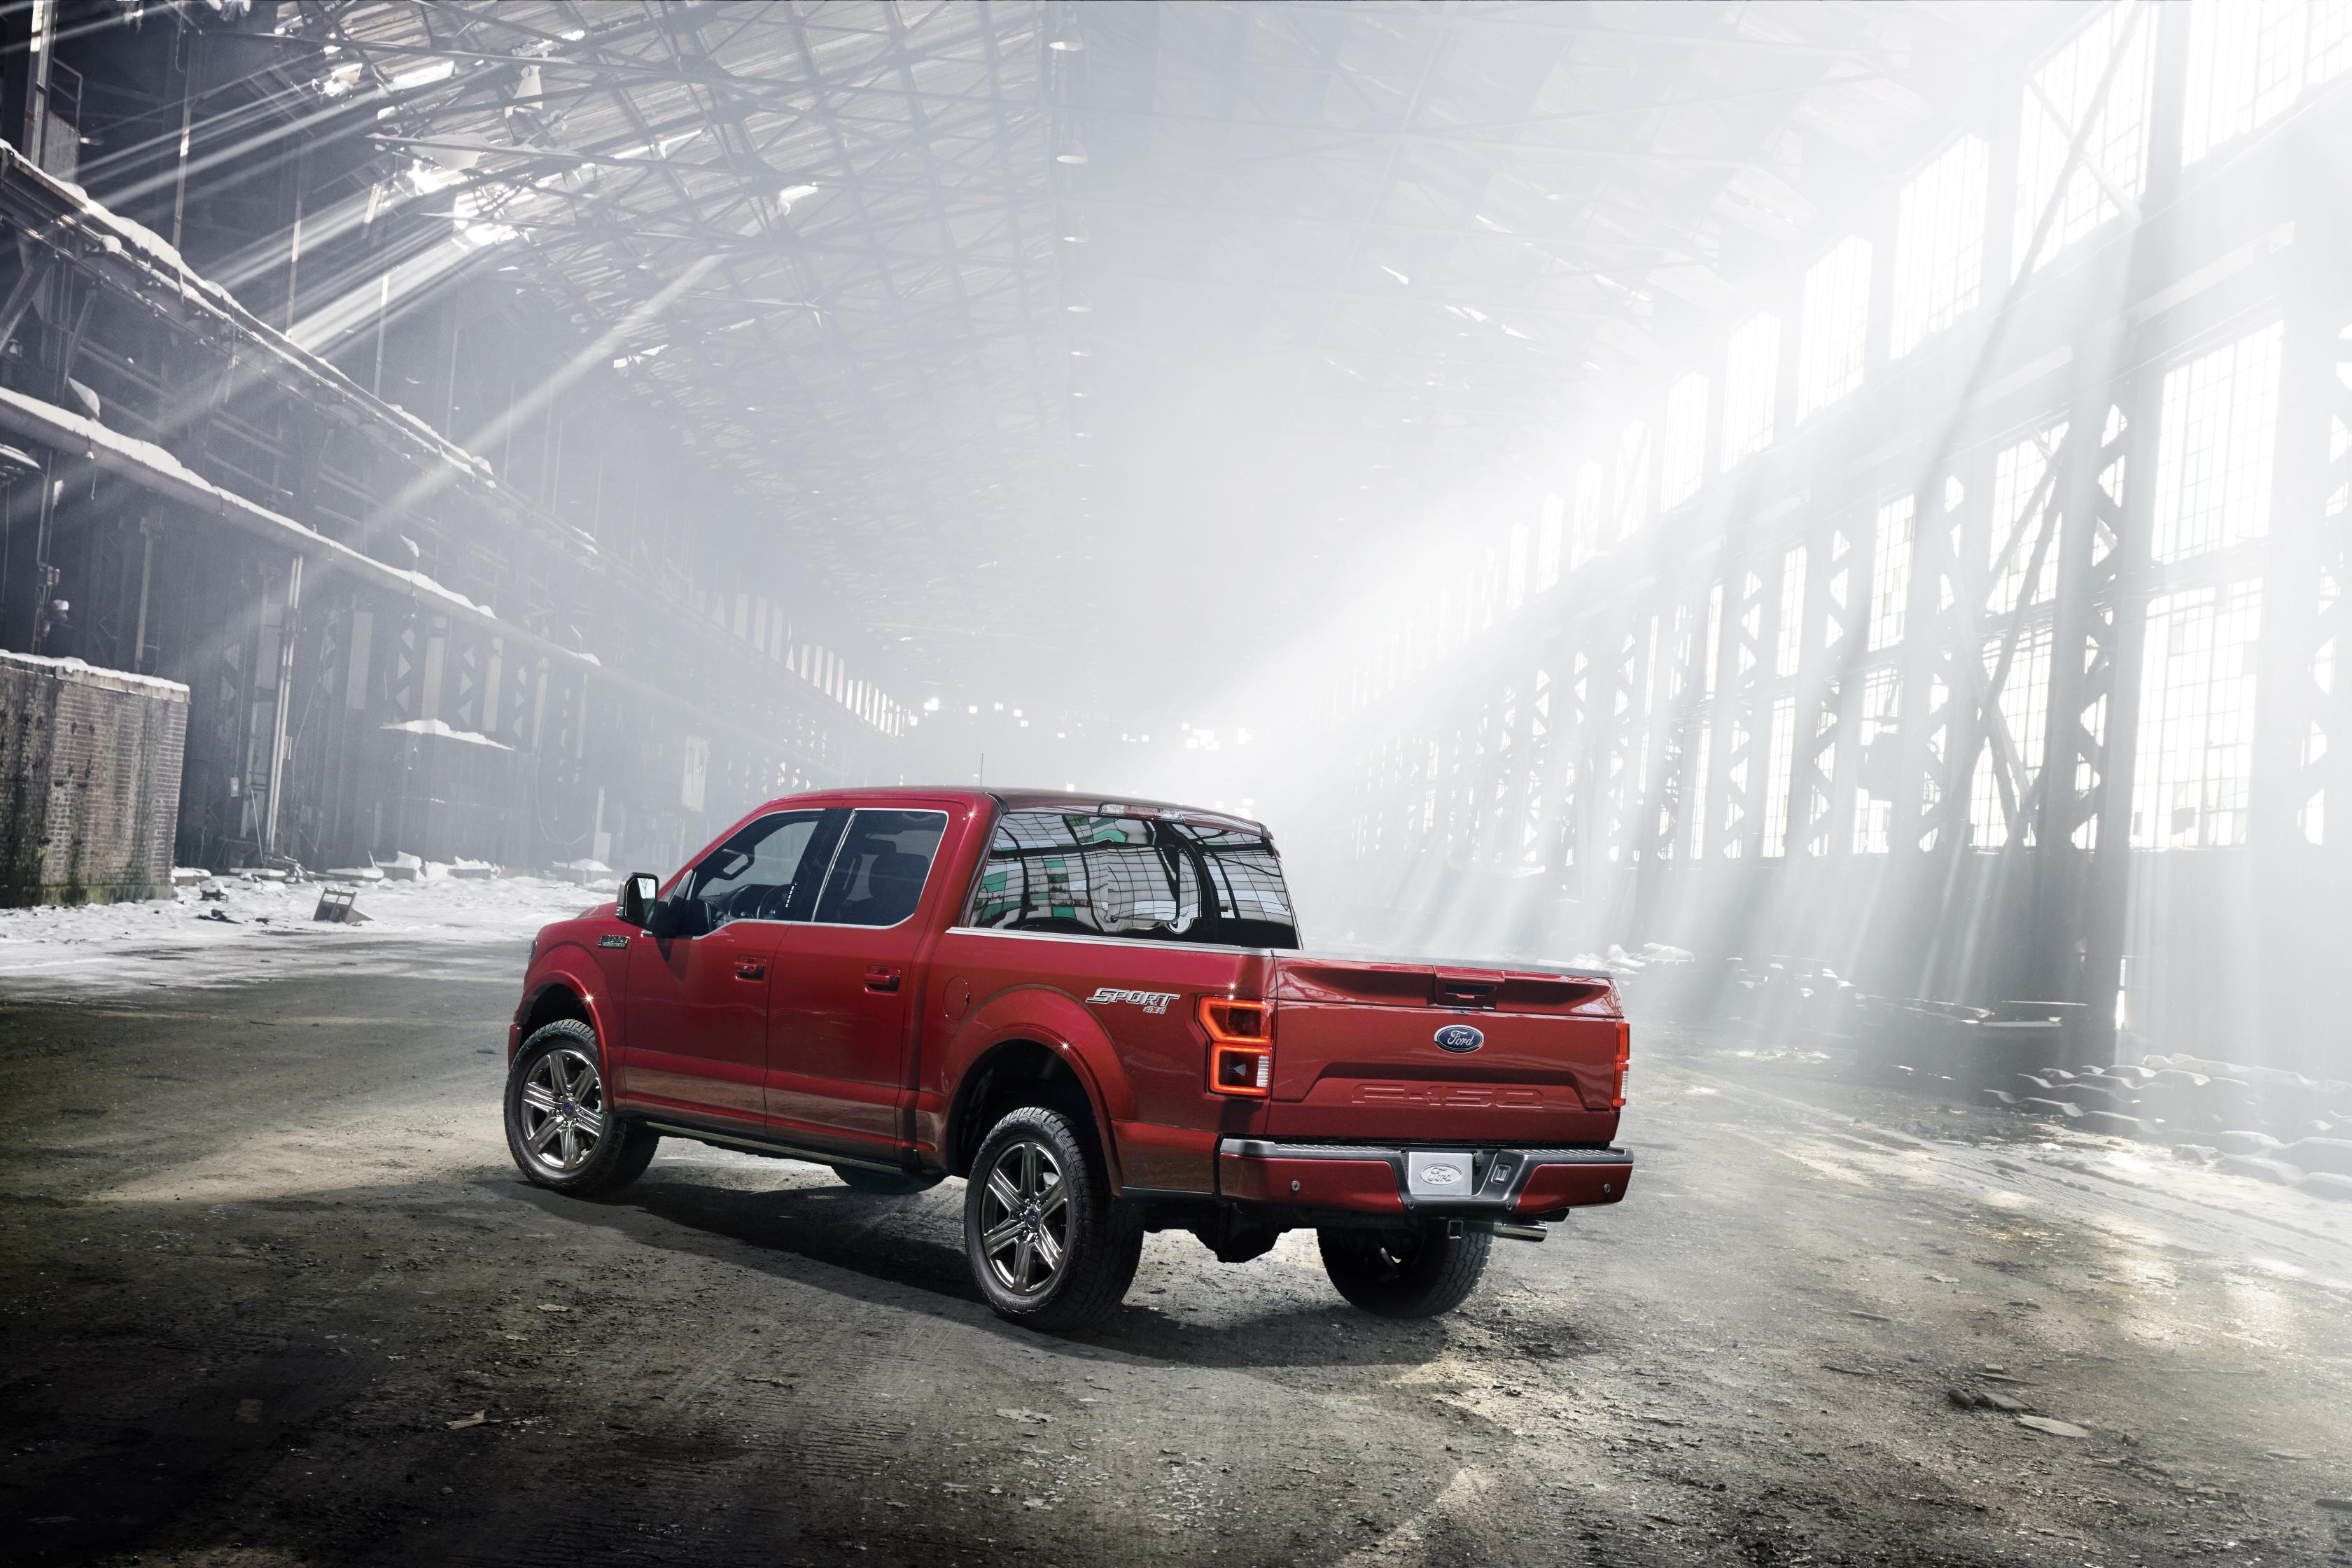 The Ford F Series Spearheaded By 150 Line Of Half Ton Pickups Sold 896 764 Examples Through Year S End It Is 41st Crowned